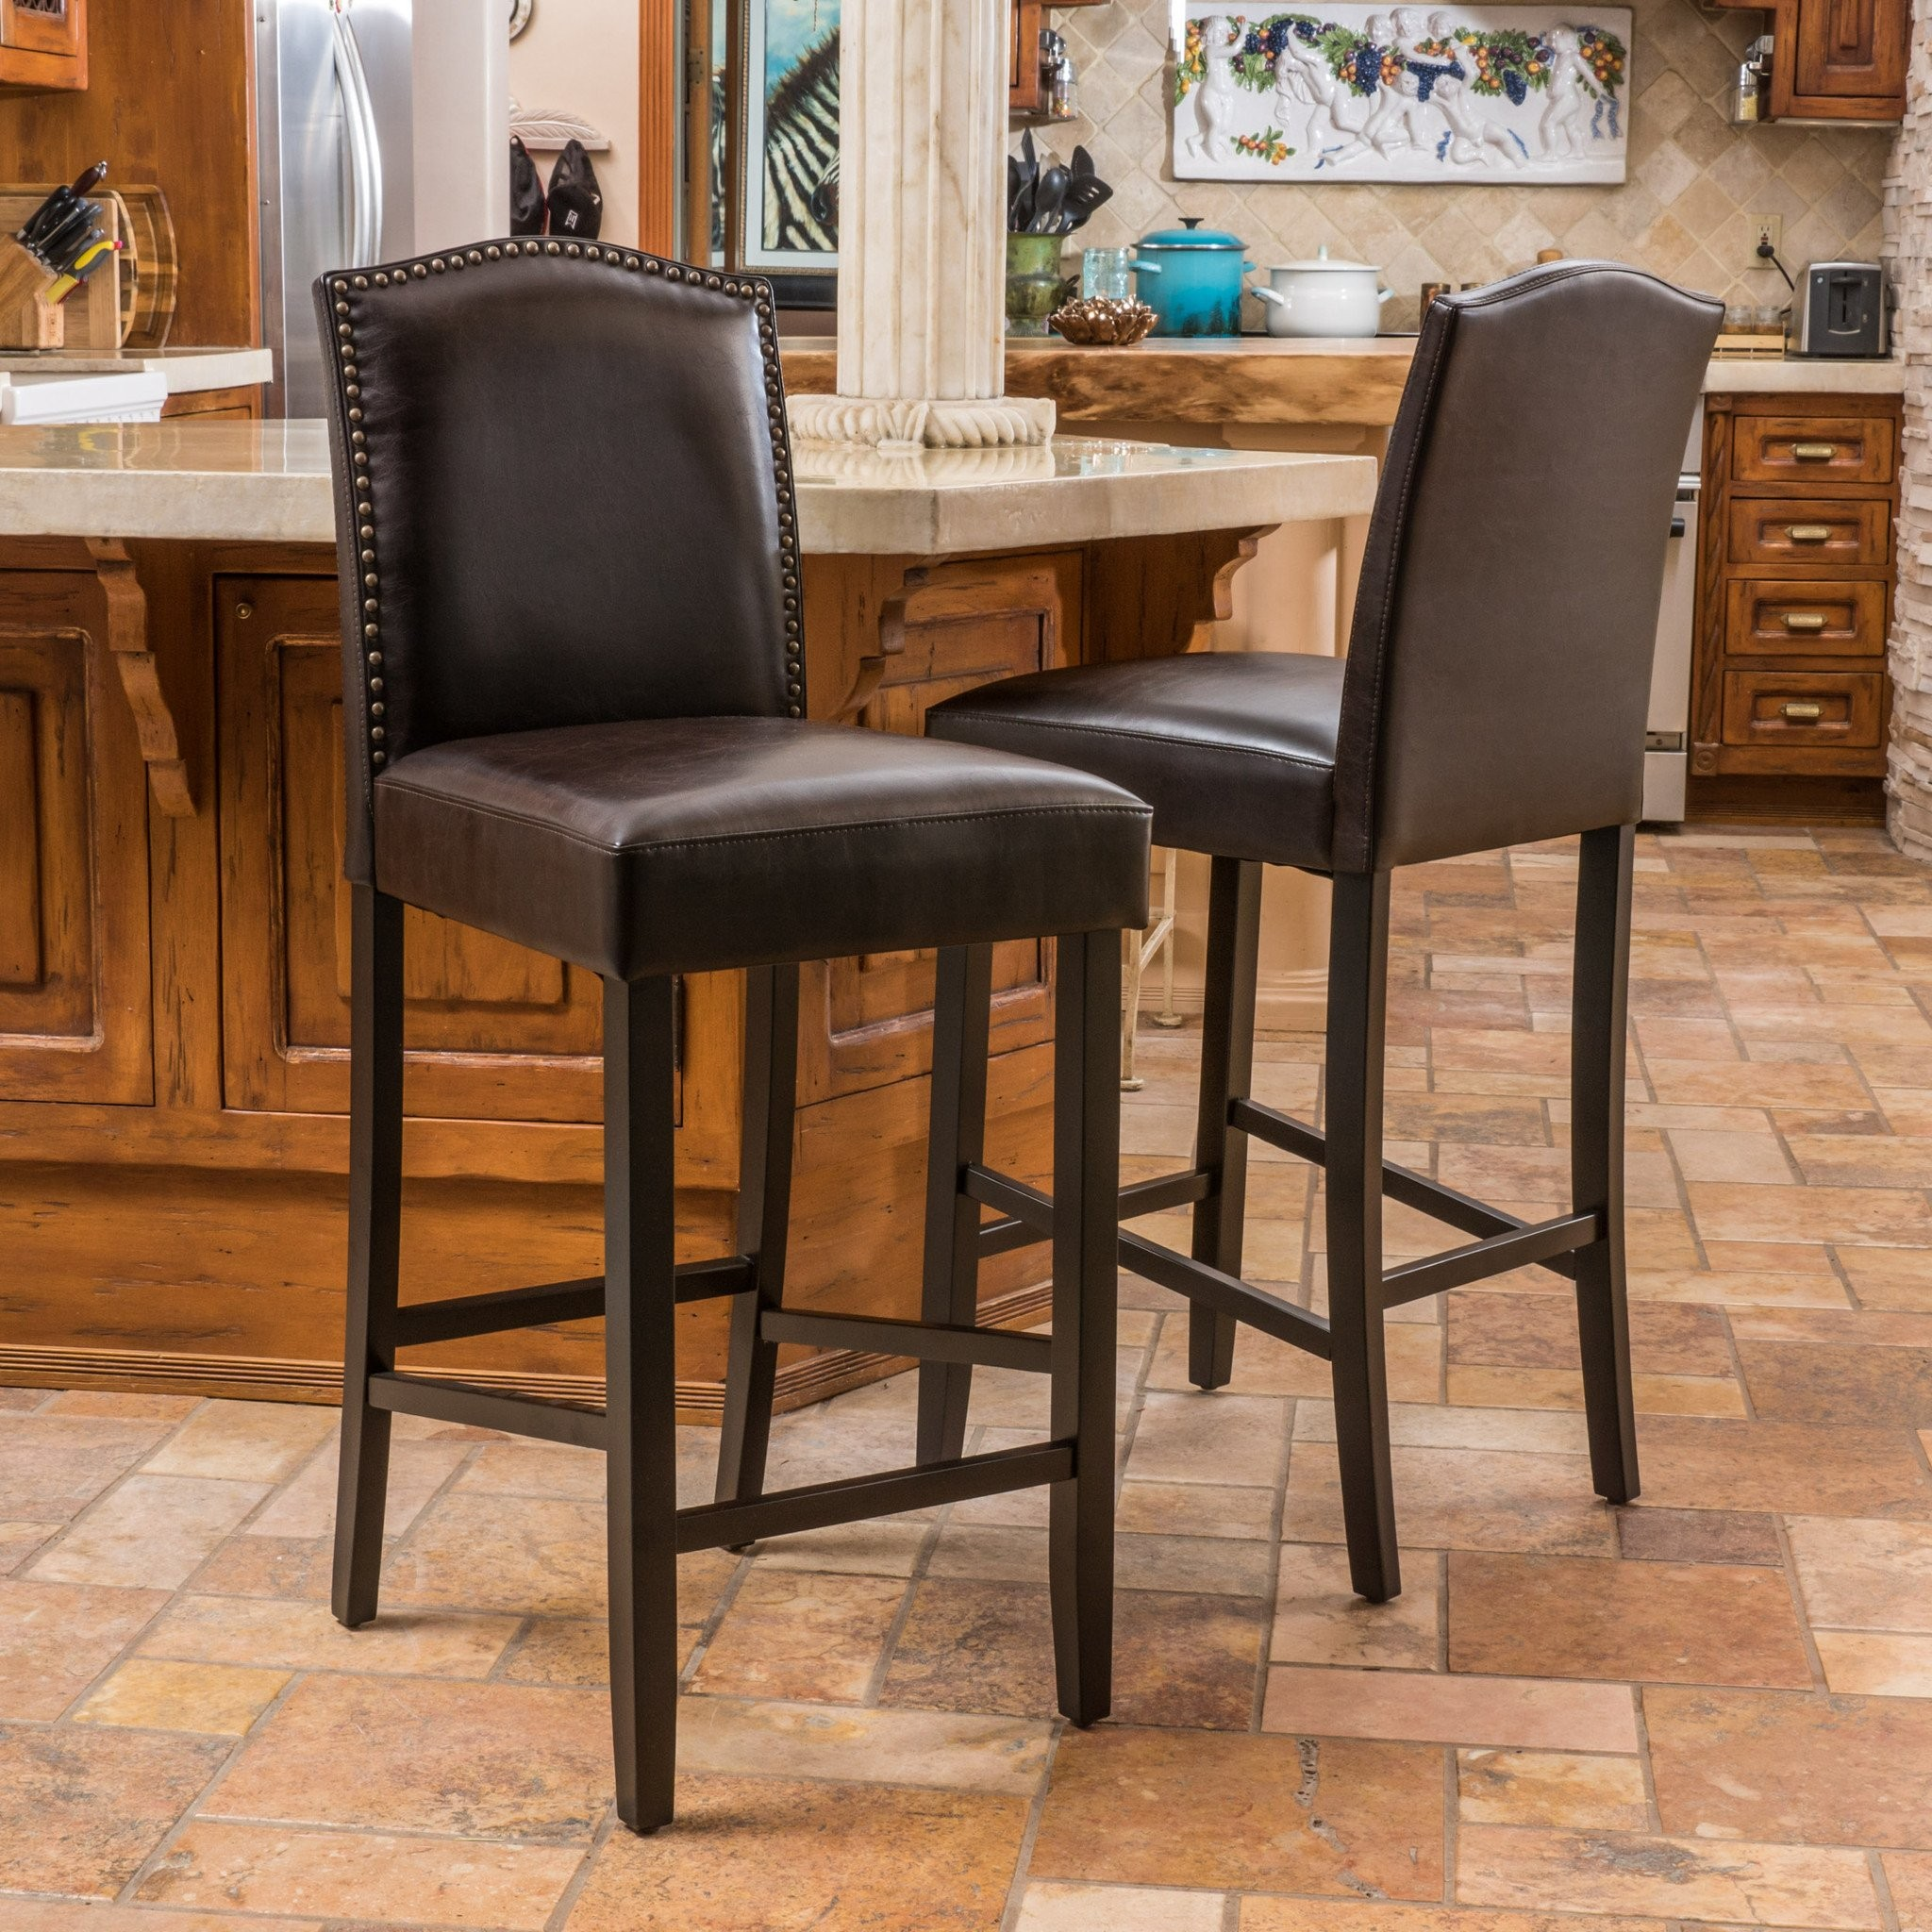 Auburn Brown Leather Backed Barstool (Set of 2)